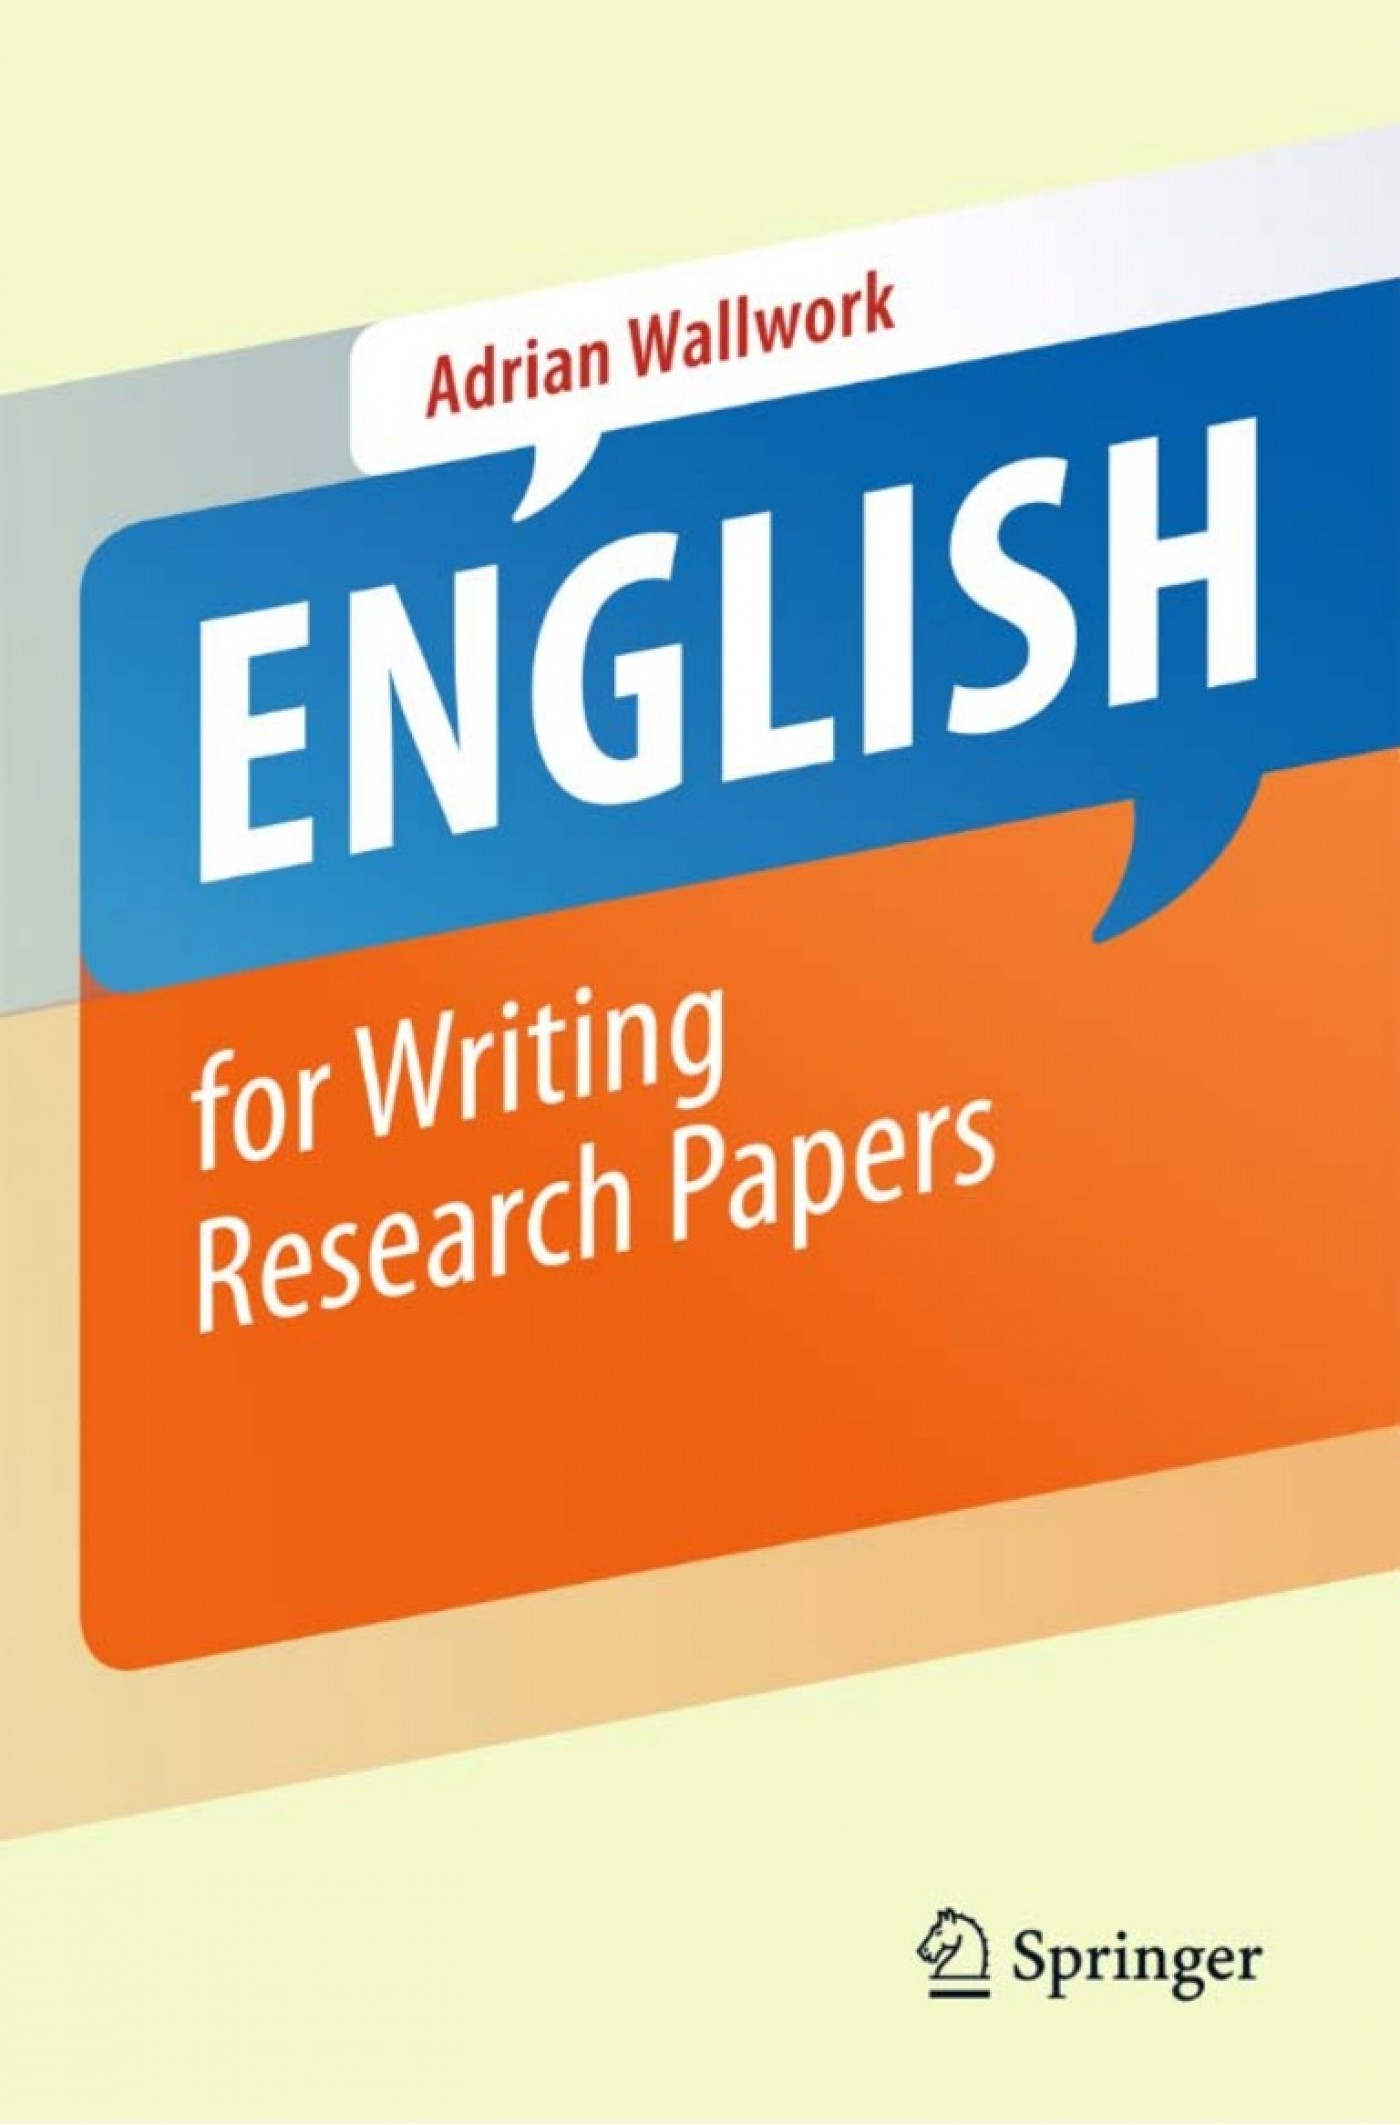 017 Research Paper Writing Englishforwritingresearchpapers Conversion Gate01 Thumbnail Unforgettable Service Online Software Free Download 1400